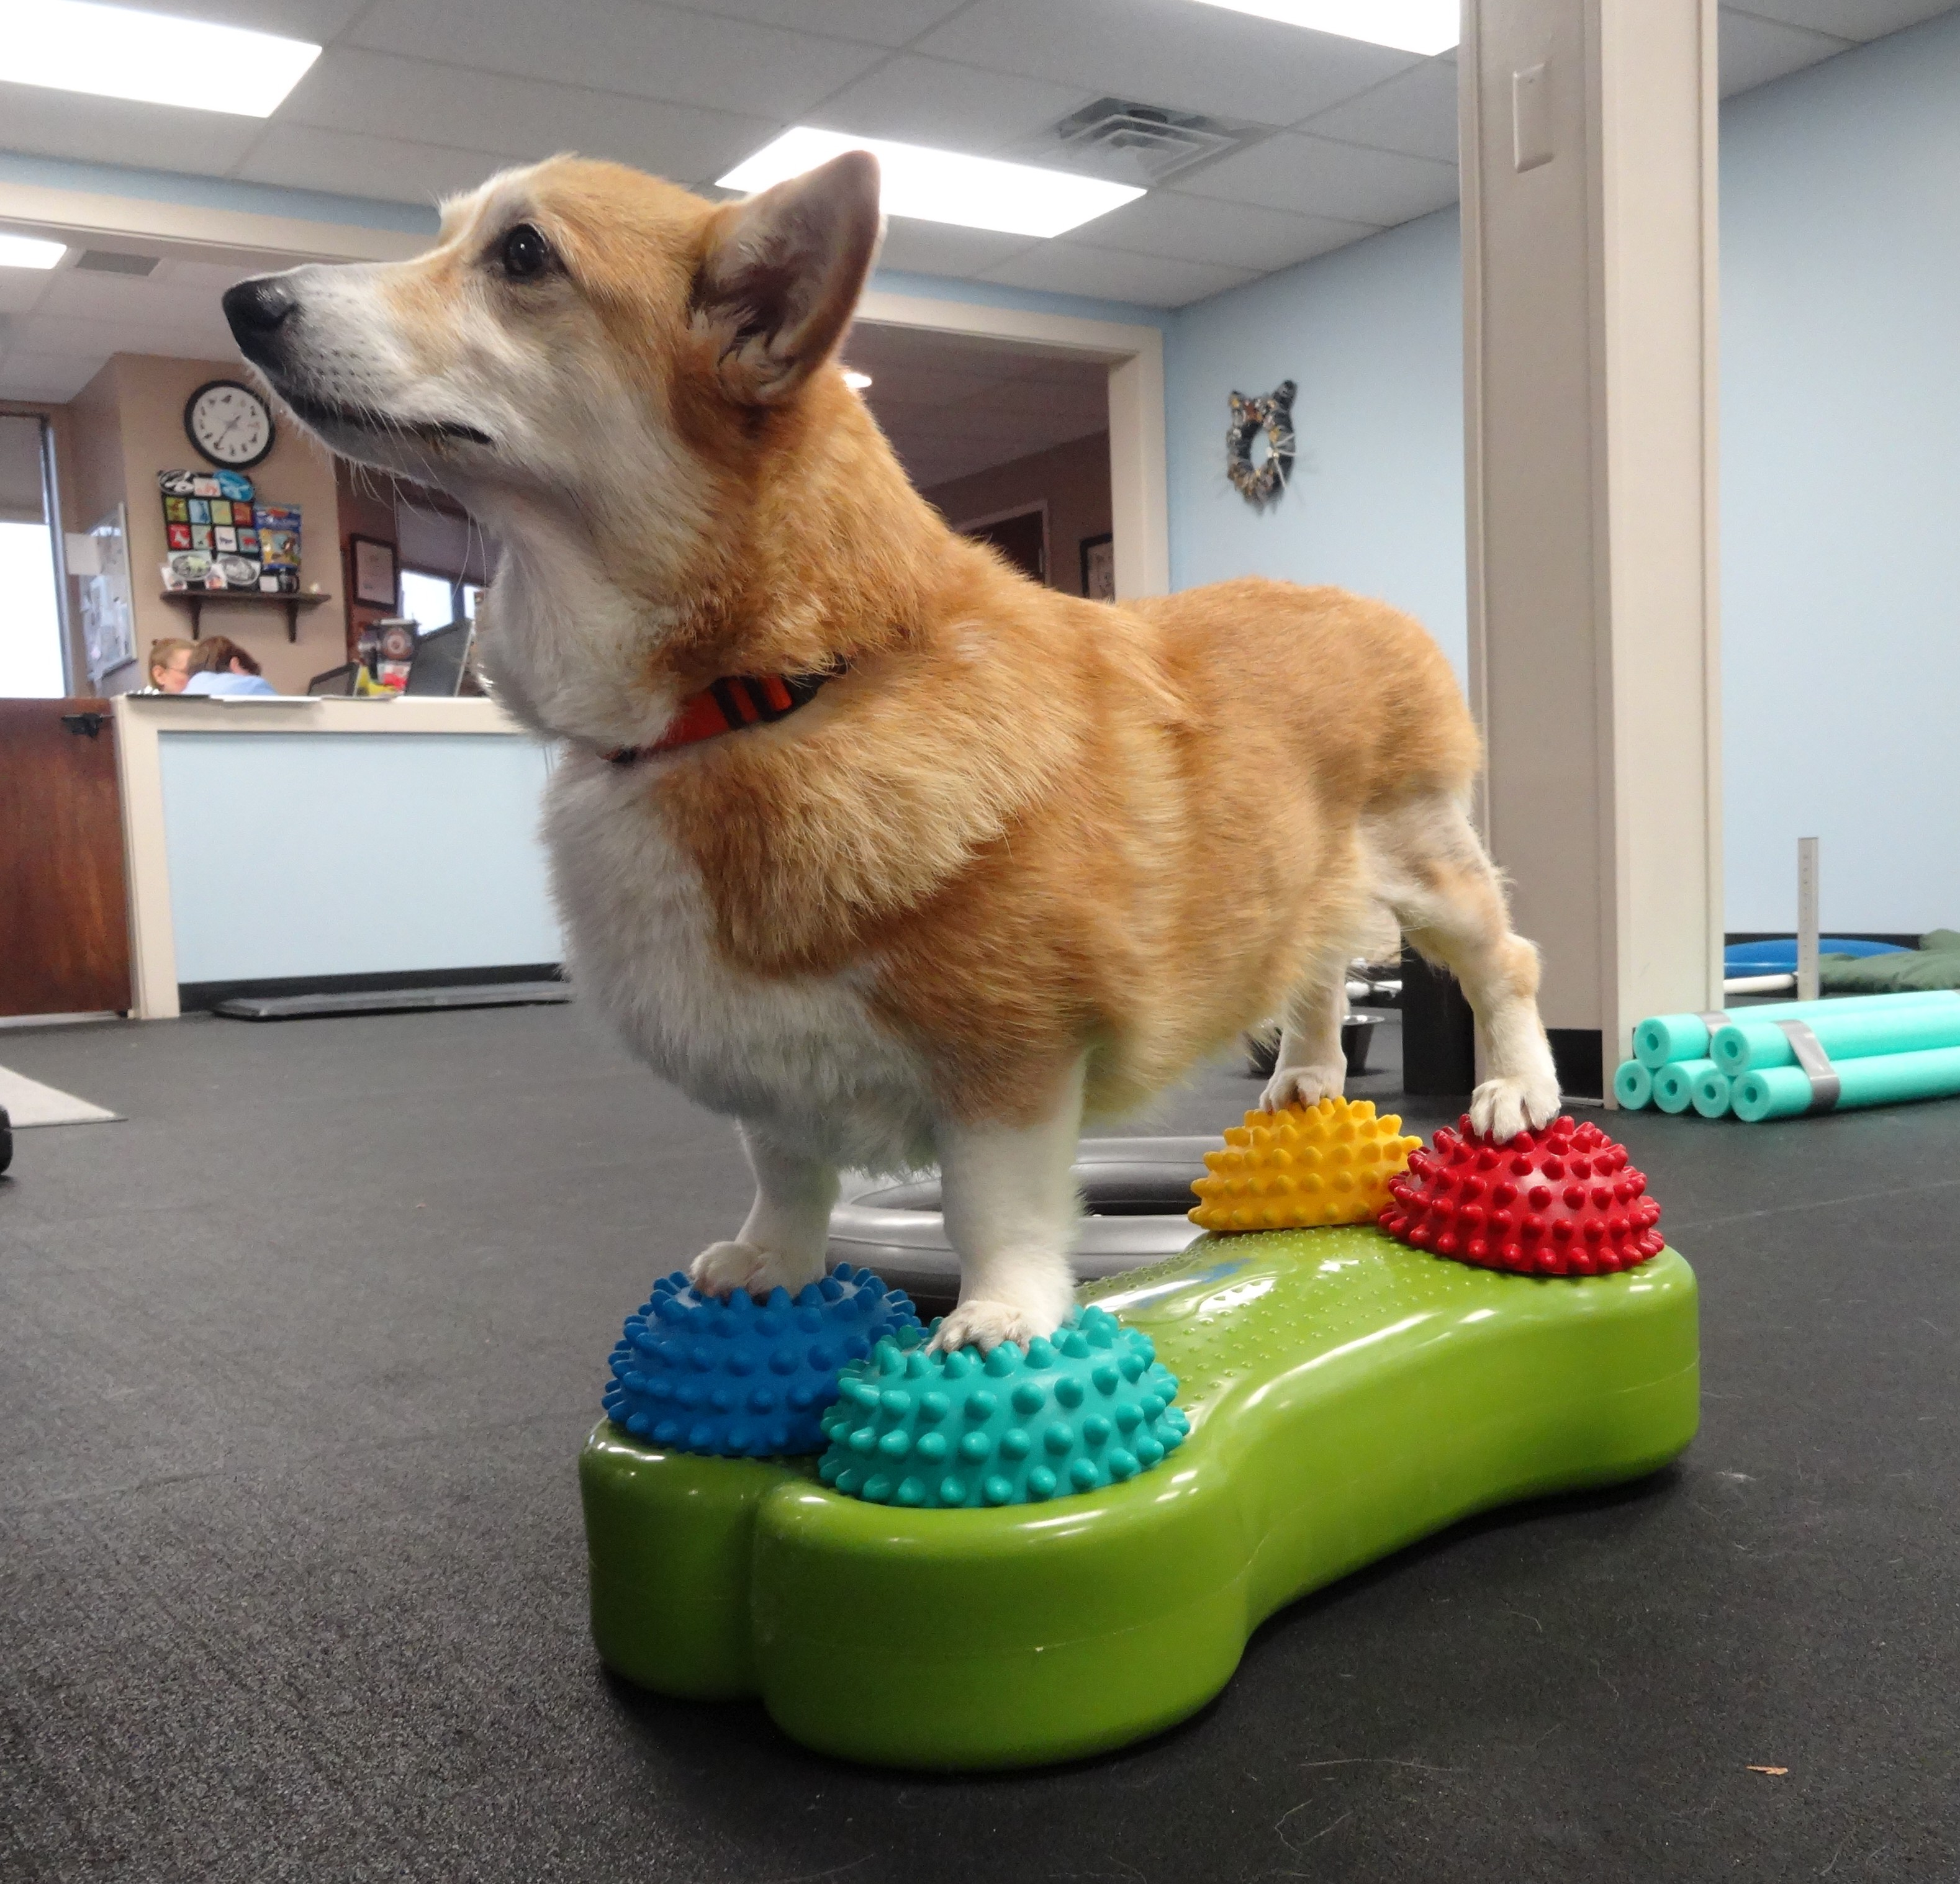 Canine physical therapy - Doods Practices Her Balance After Tplo Surgery On Her Left Knee